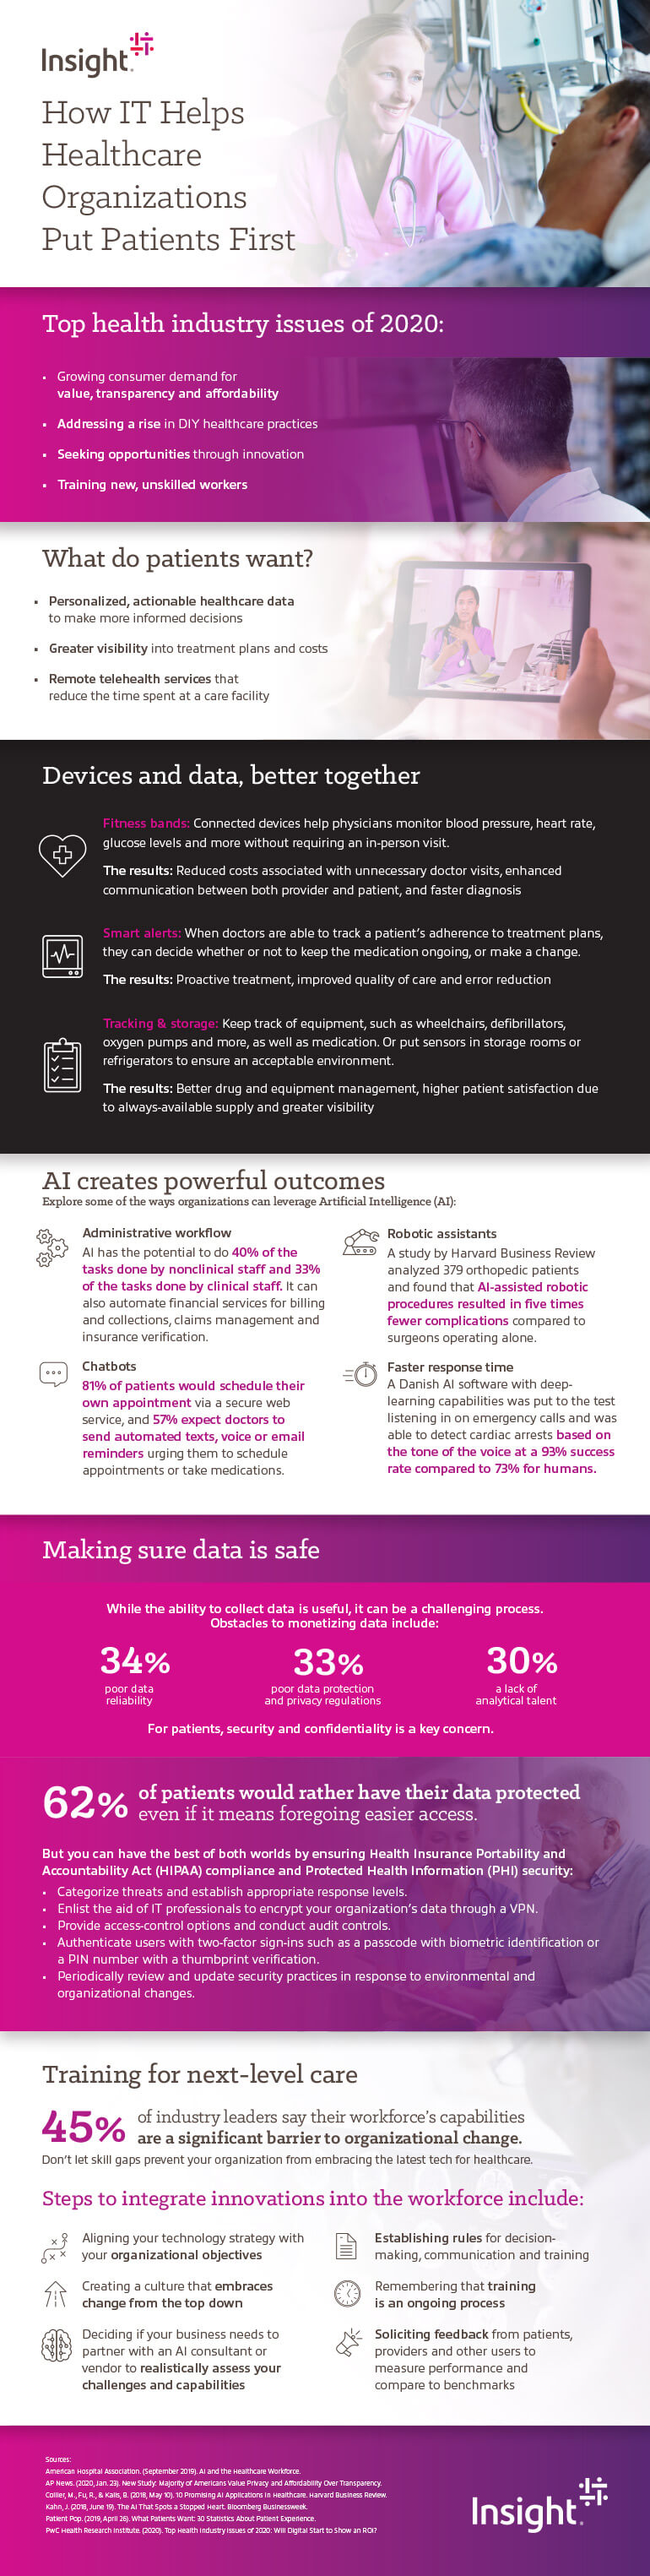 How IT Helps Healthcare Organizations Put Patients First infographic as transcribed below